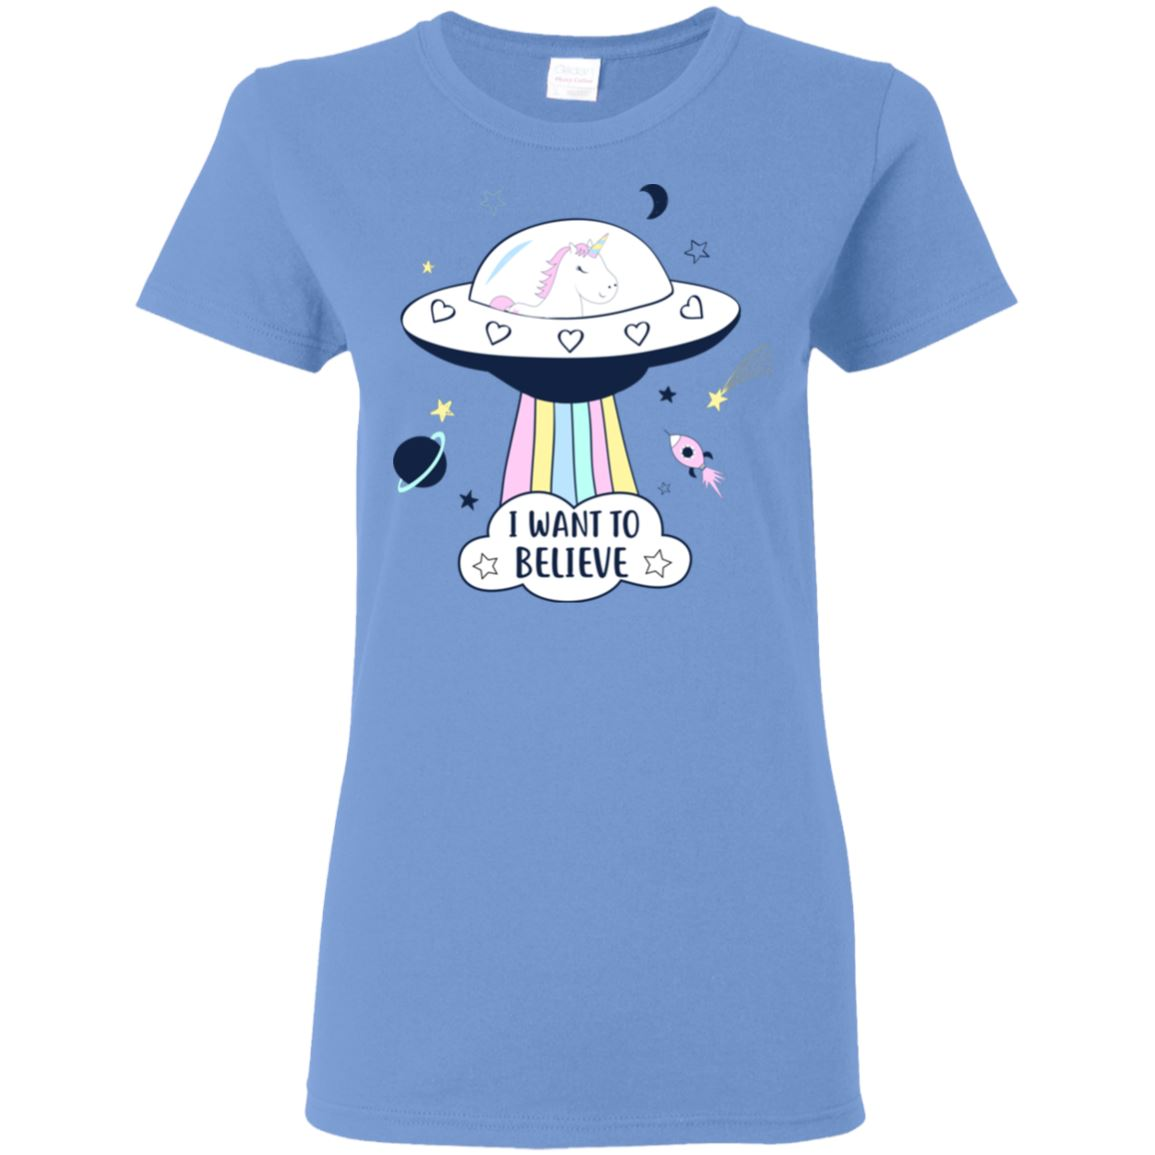 I Want To Believe Unicorn Women's T-Shirt T-Shirts Carolina Blue S